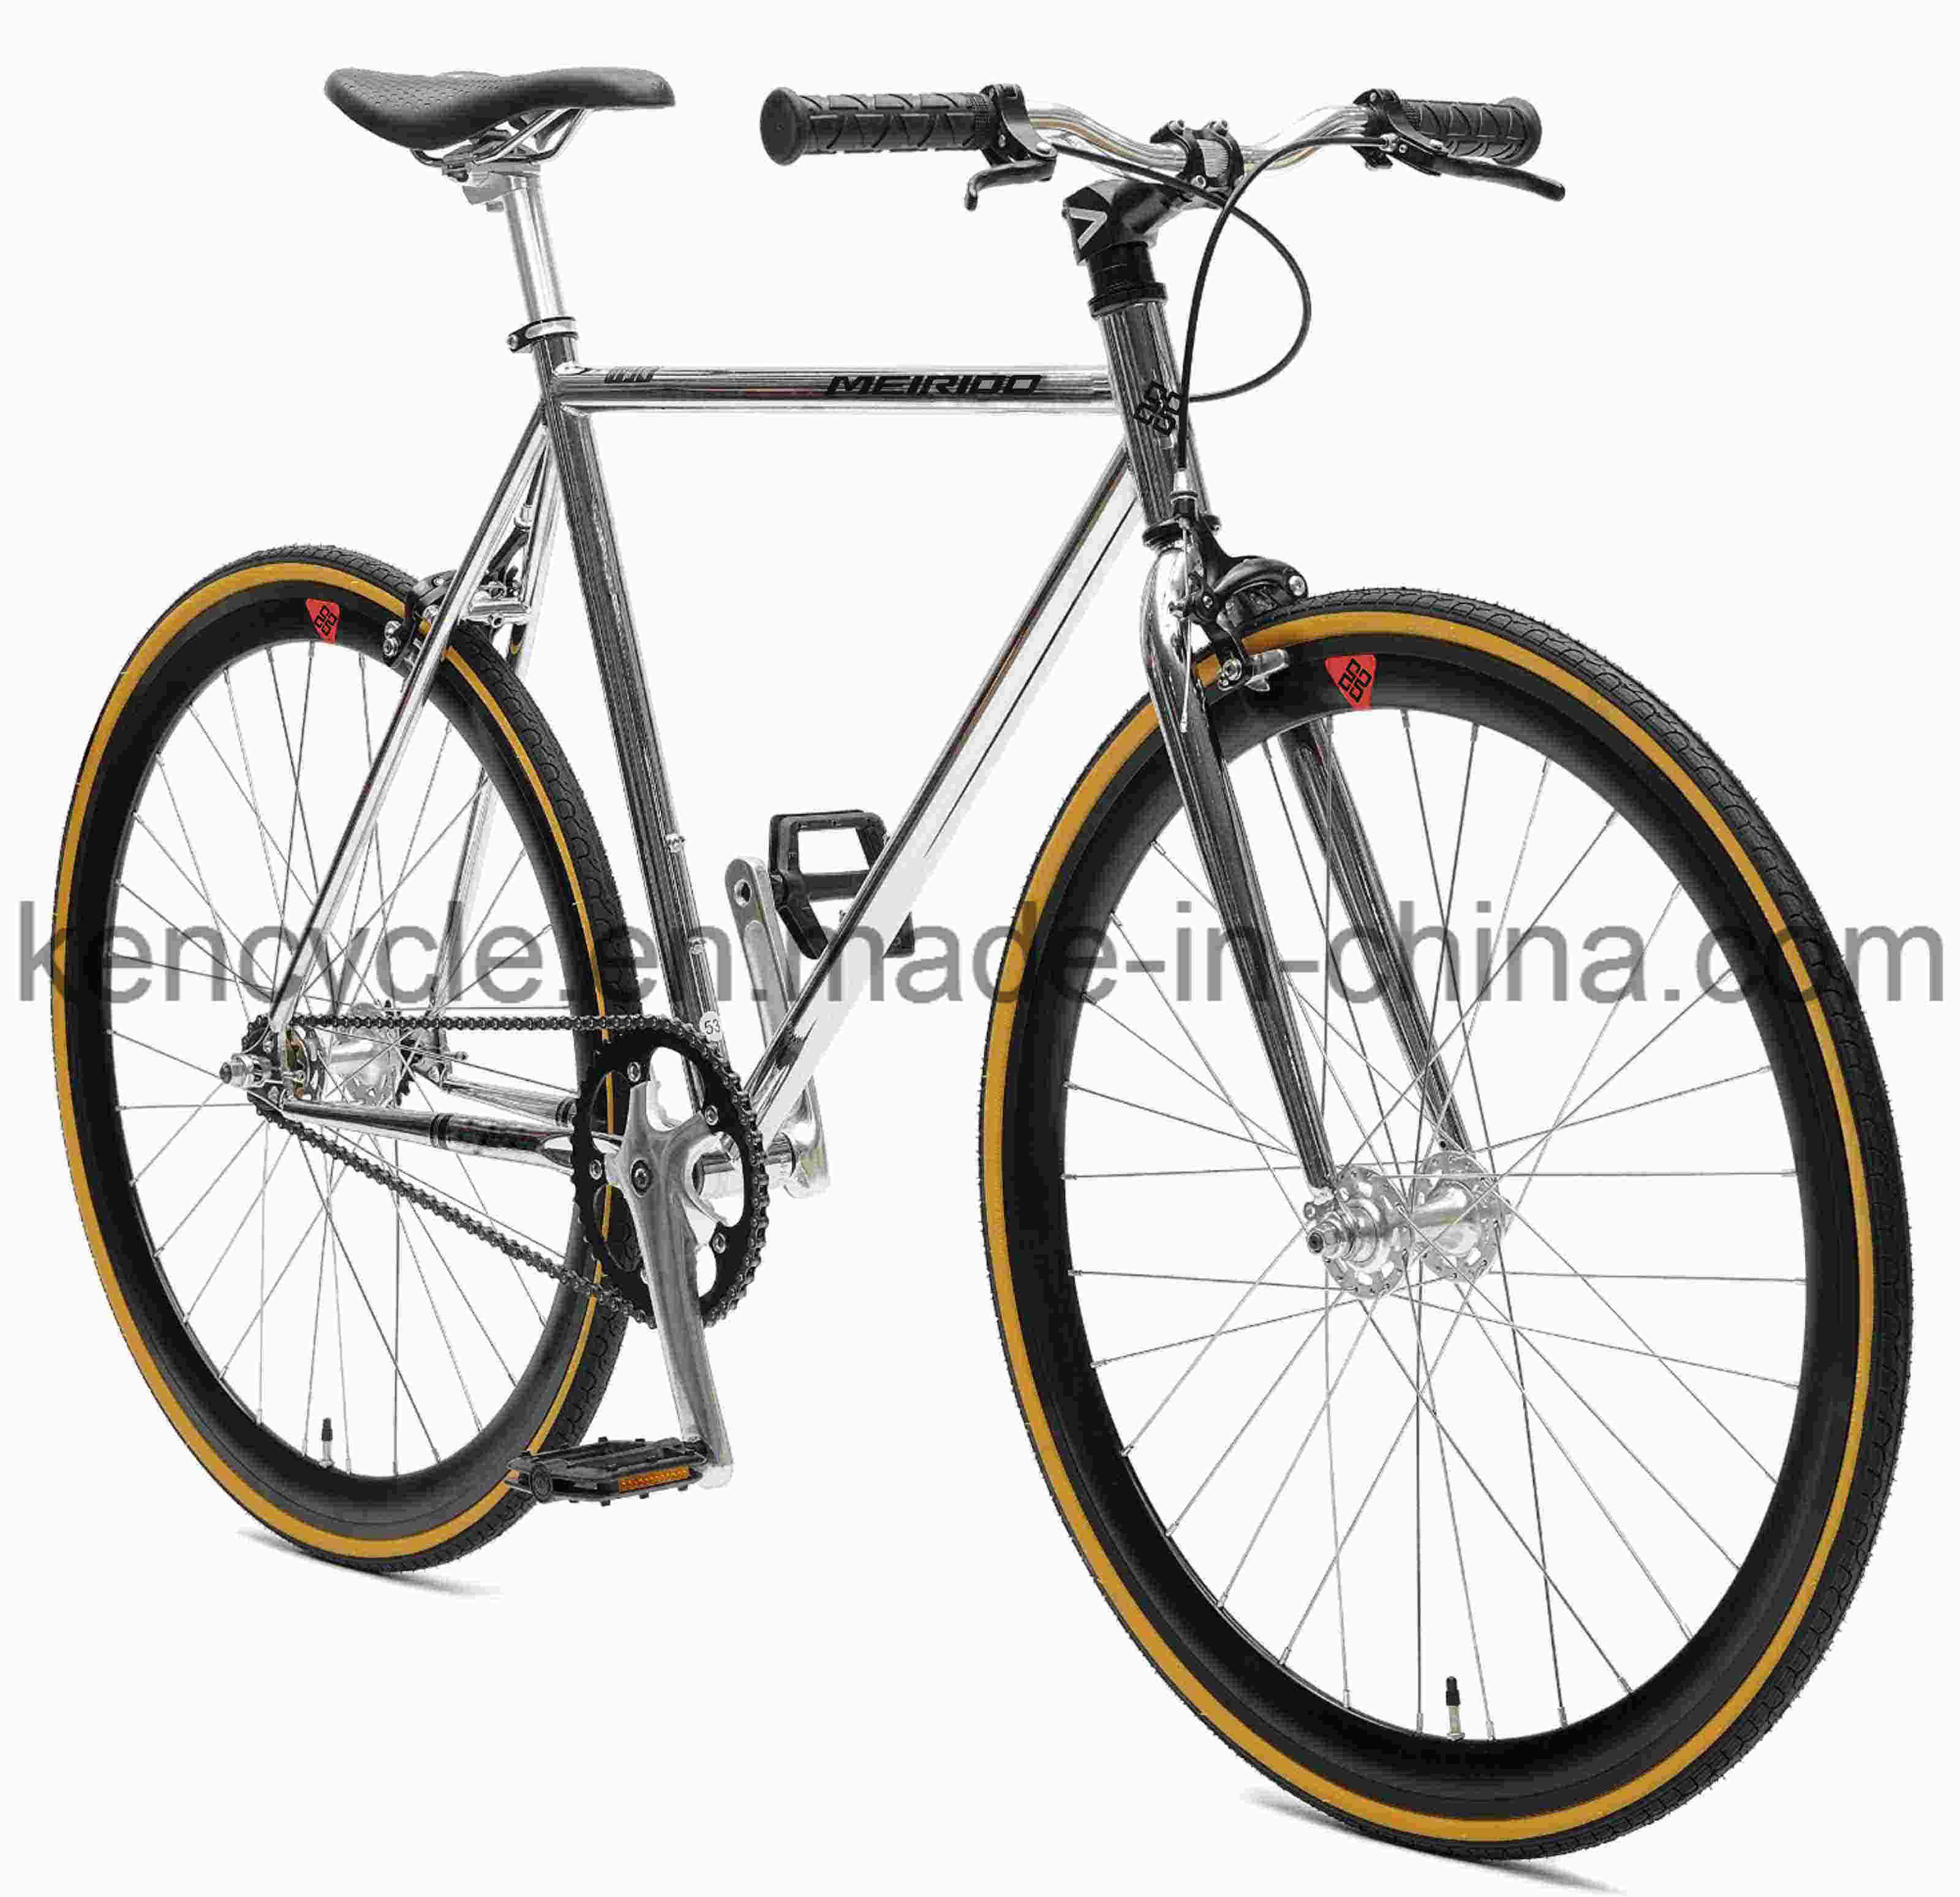 High Tensile Fixed Gear Bike Bicycle Sy-Fx70007